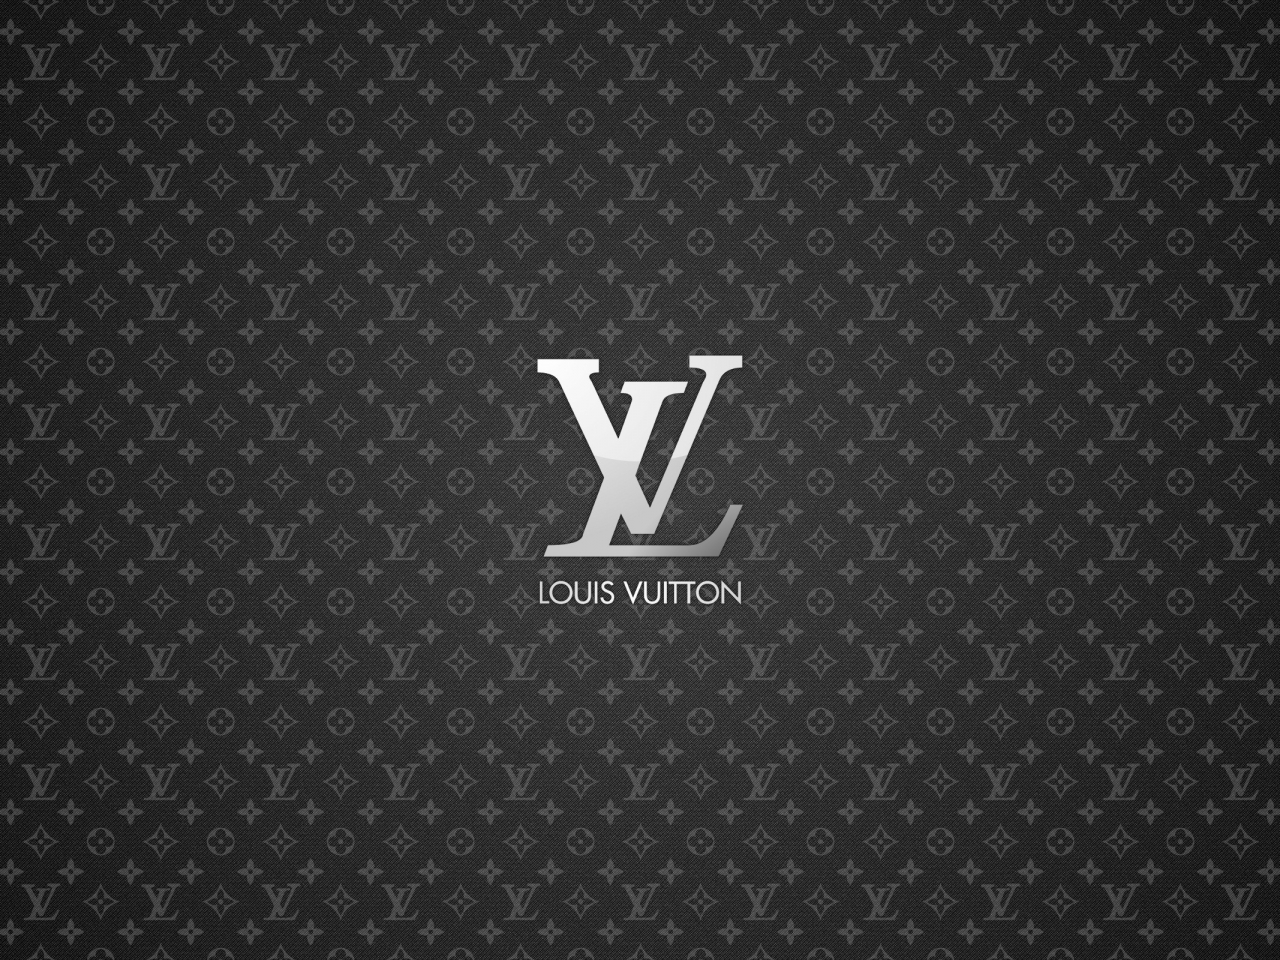 Louis Vuitton Store Managers Workshop Istanbul